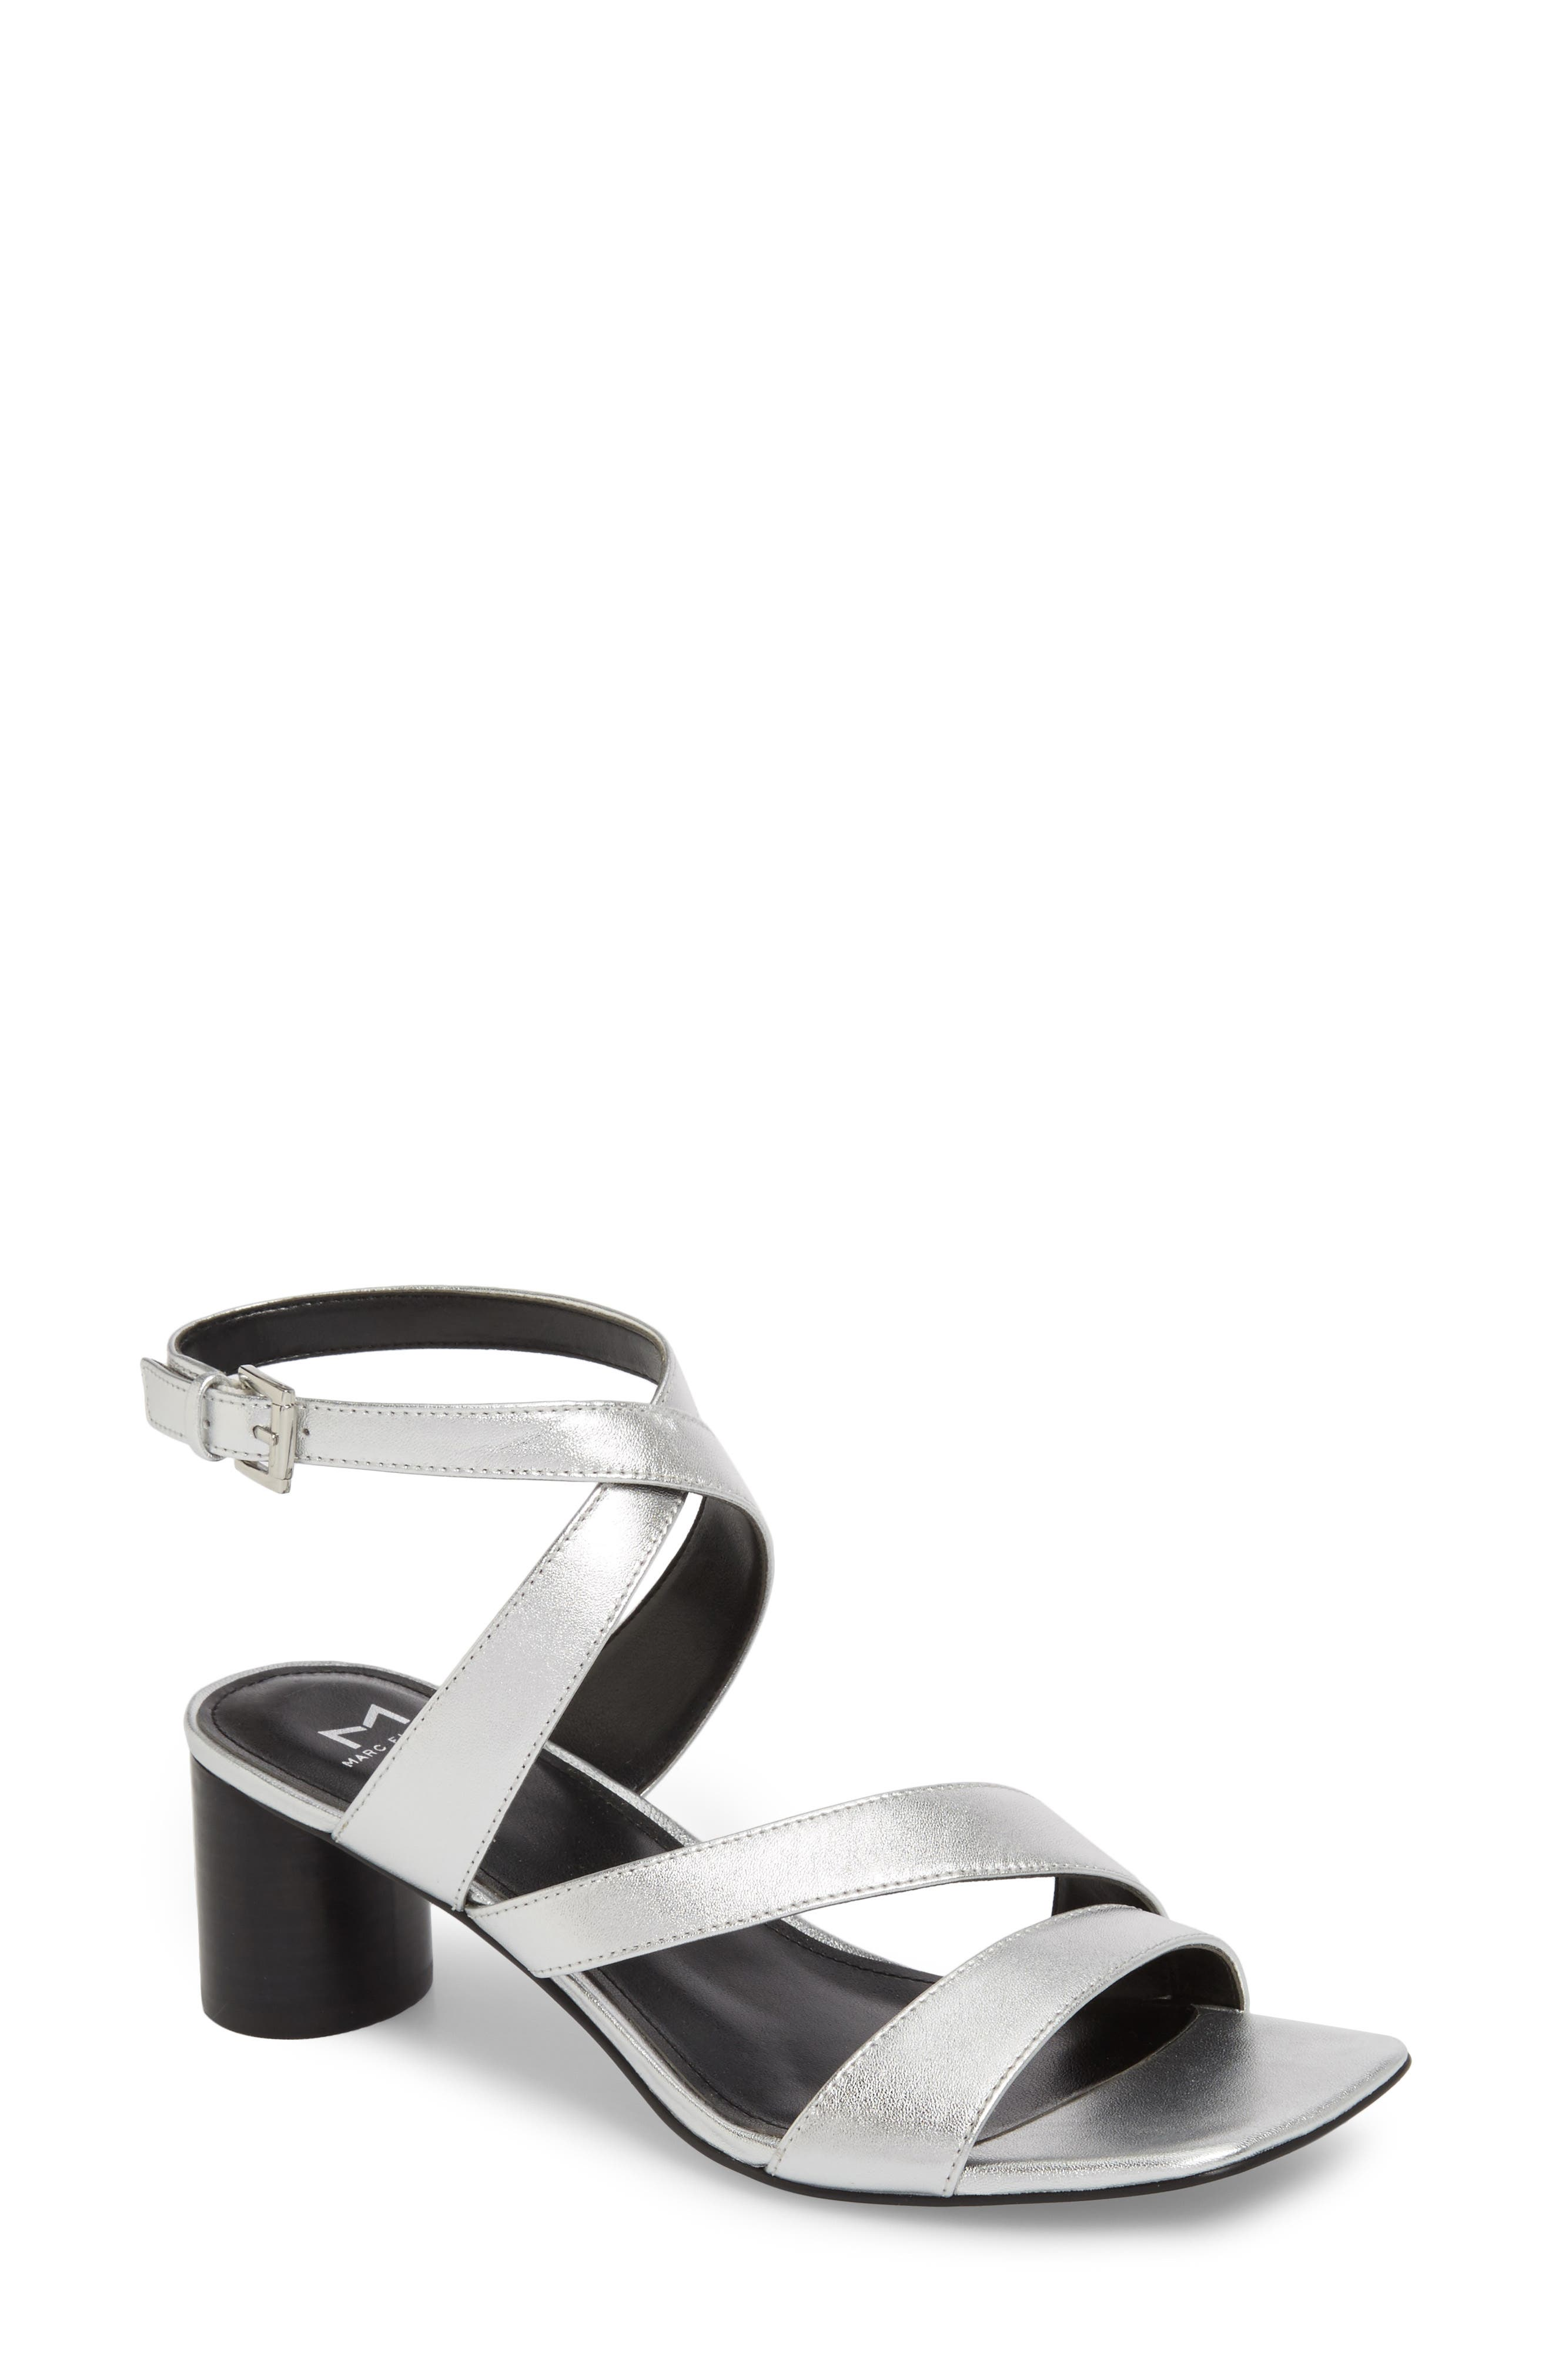 Marc Fischer LTD Idana Strappy Sandal,                             Main thumbnail 1, color,                             Silver Leather